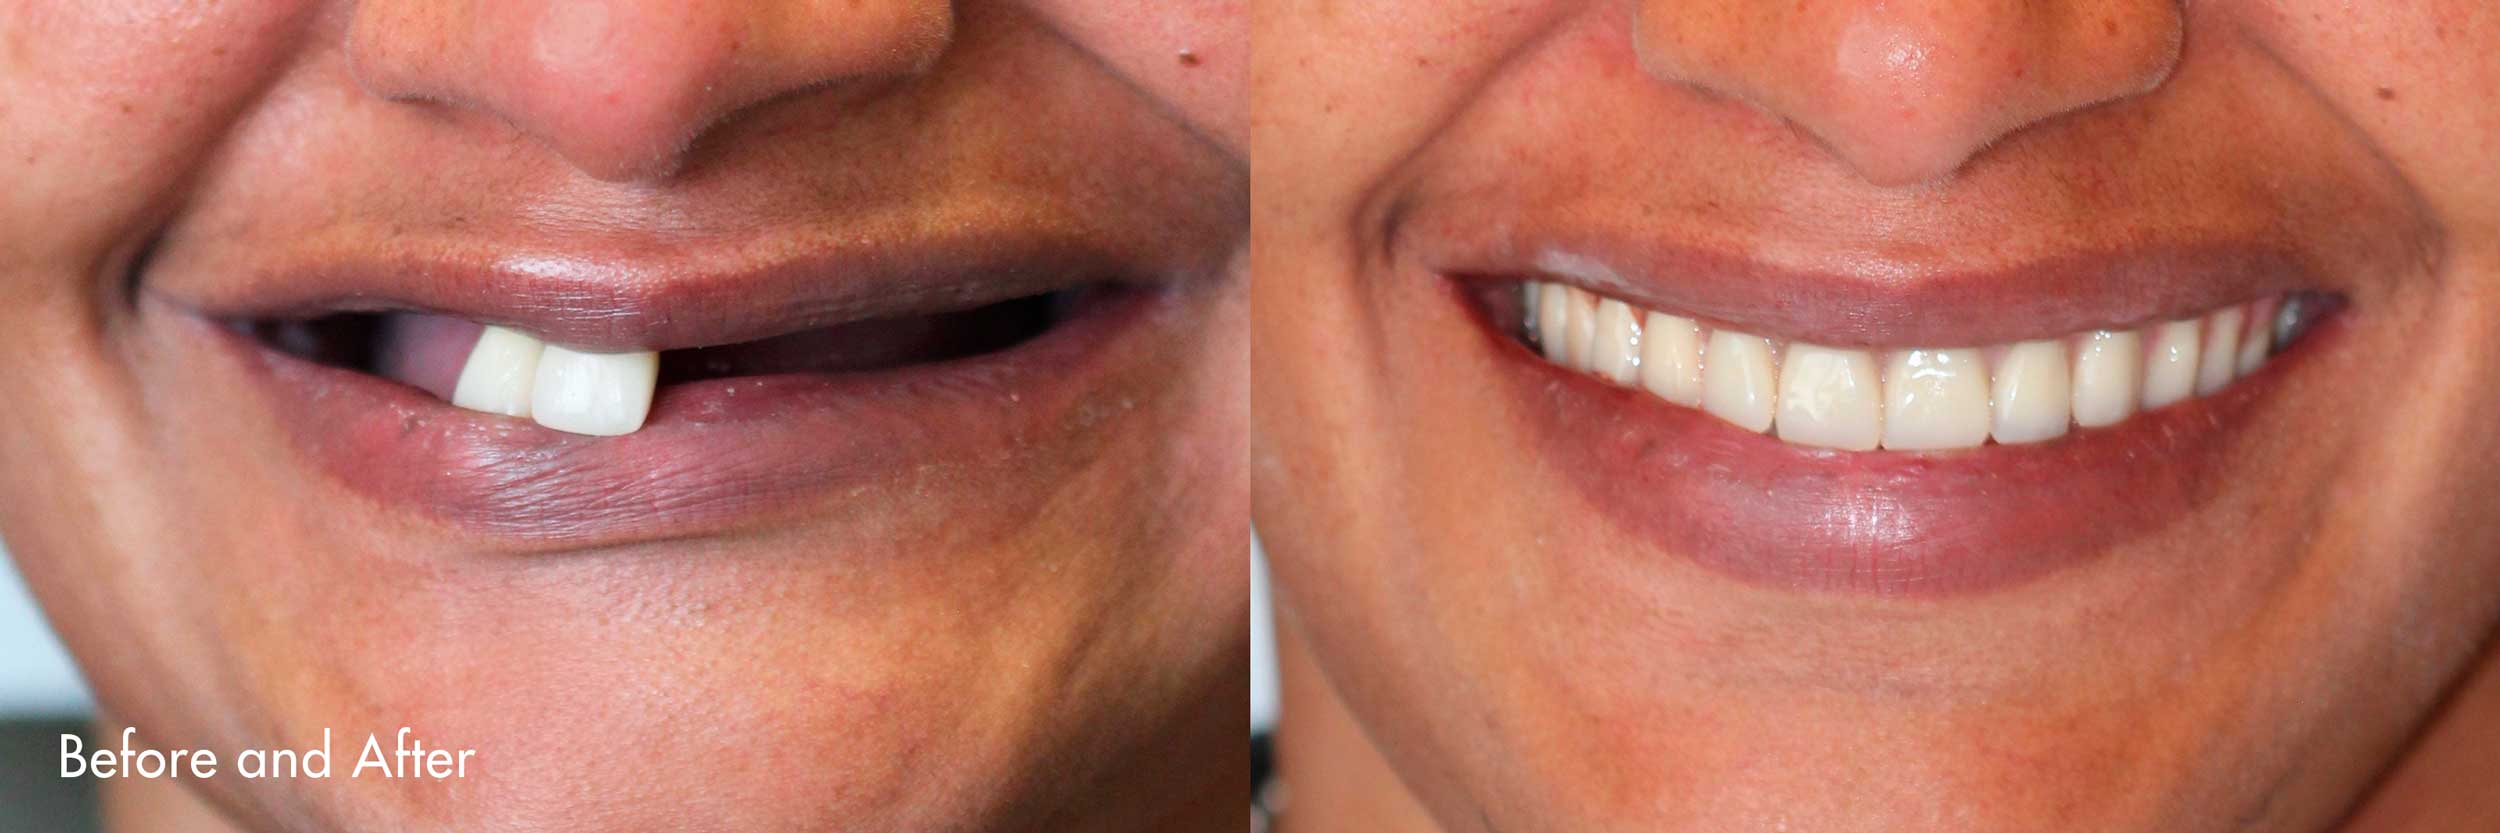 Smiles created by Dr. Sidi.